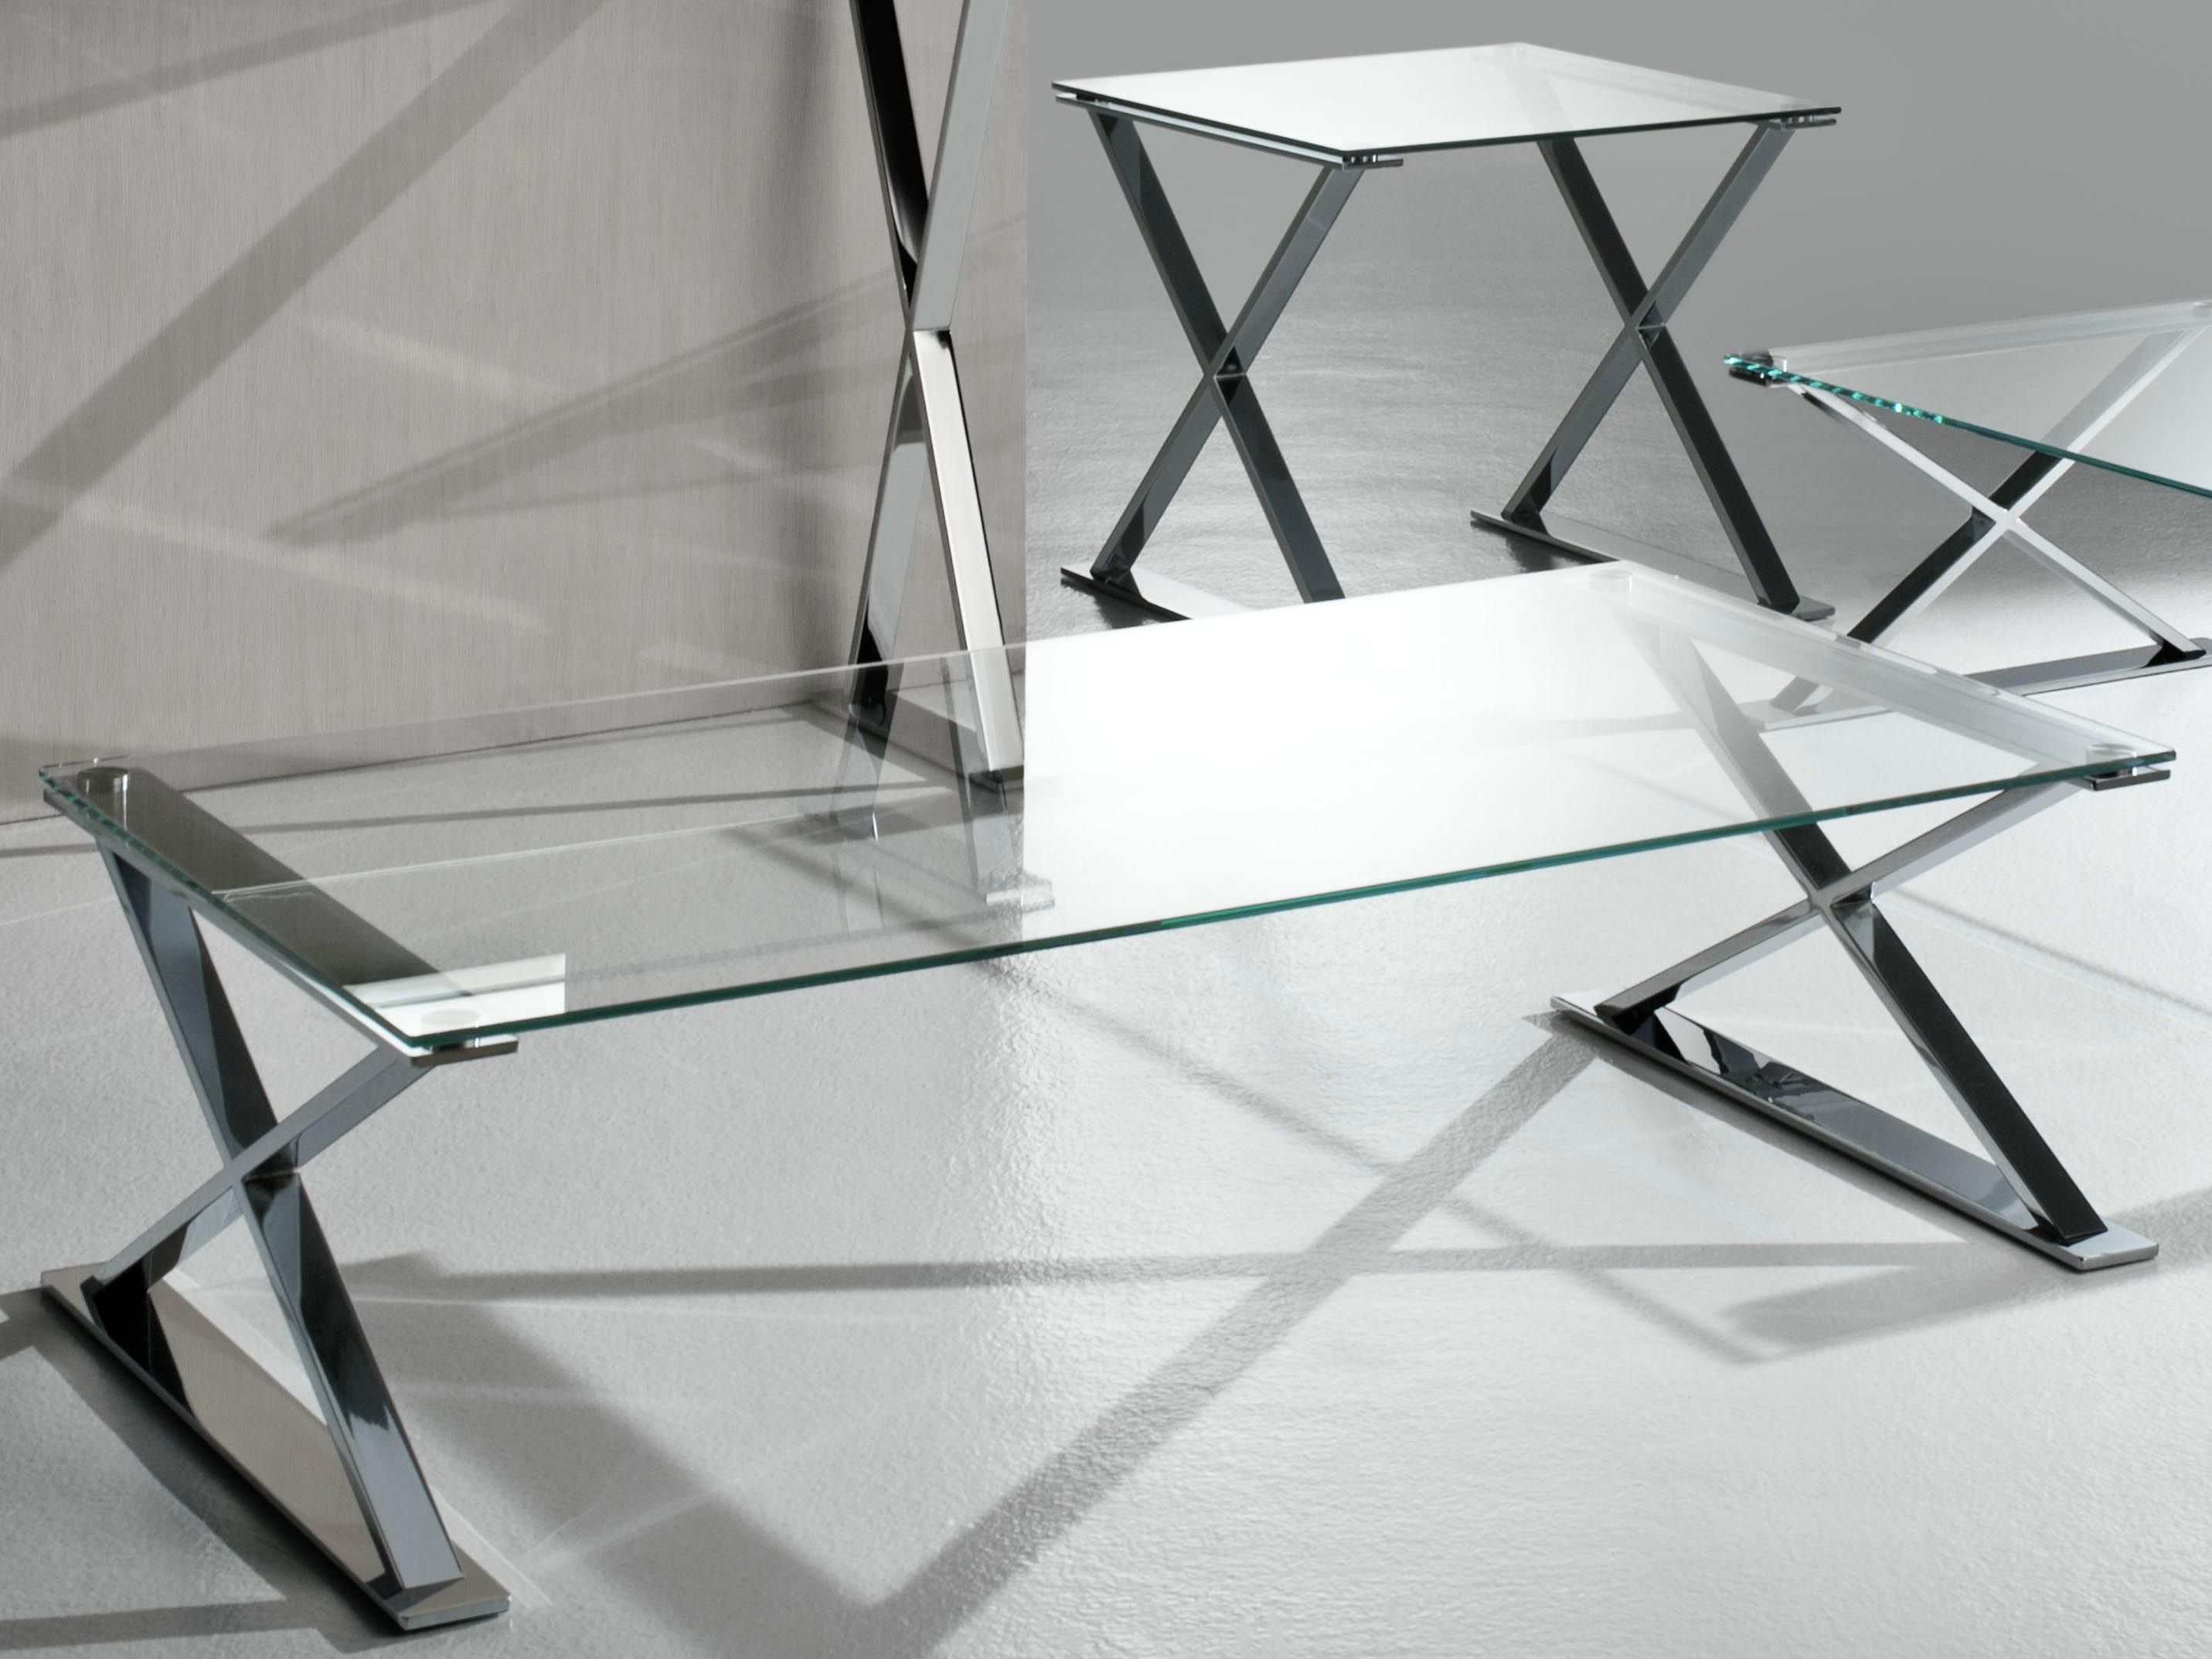 Glass And Stainless Steel Coffee Table Coffee Table Design Ideas Stainless Steel Coffee Table Modern Glass Coffee Table Steel Coffee Table [ 2146 x 2862 Pixel ]